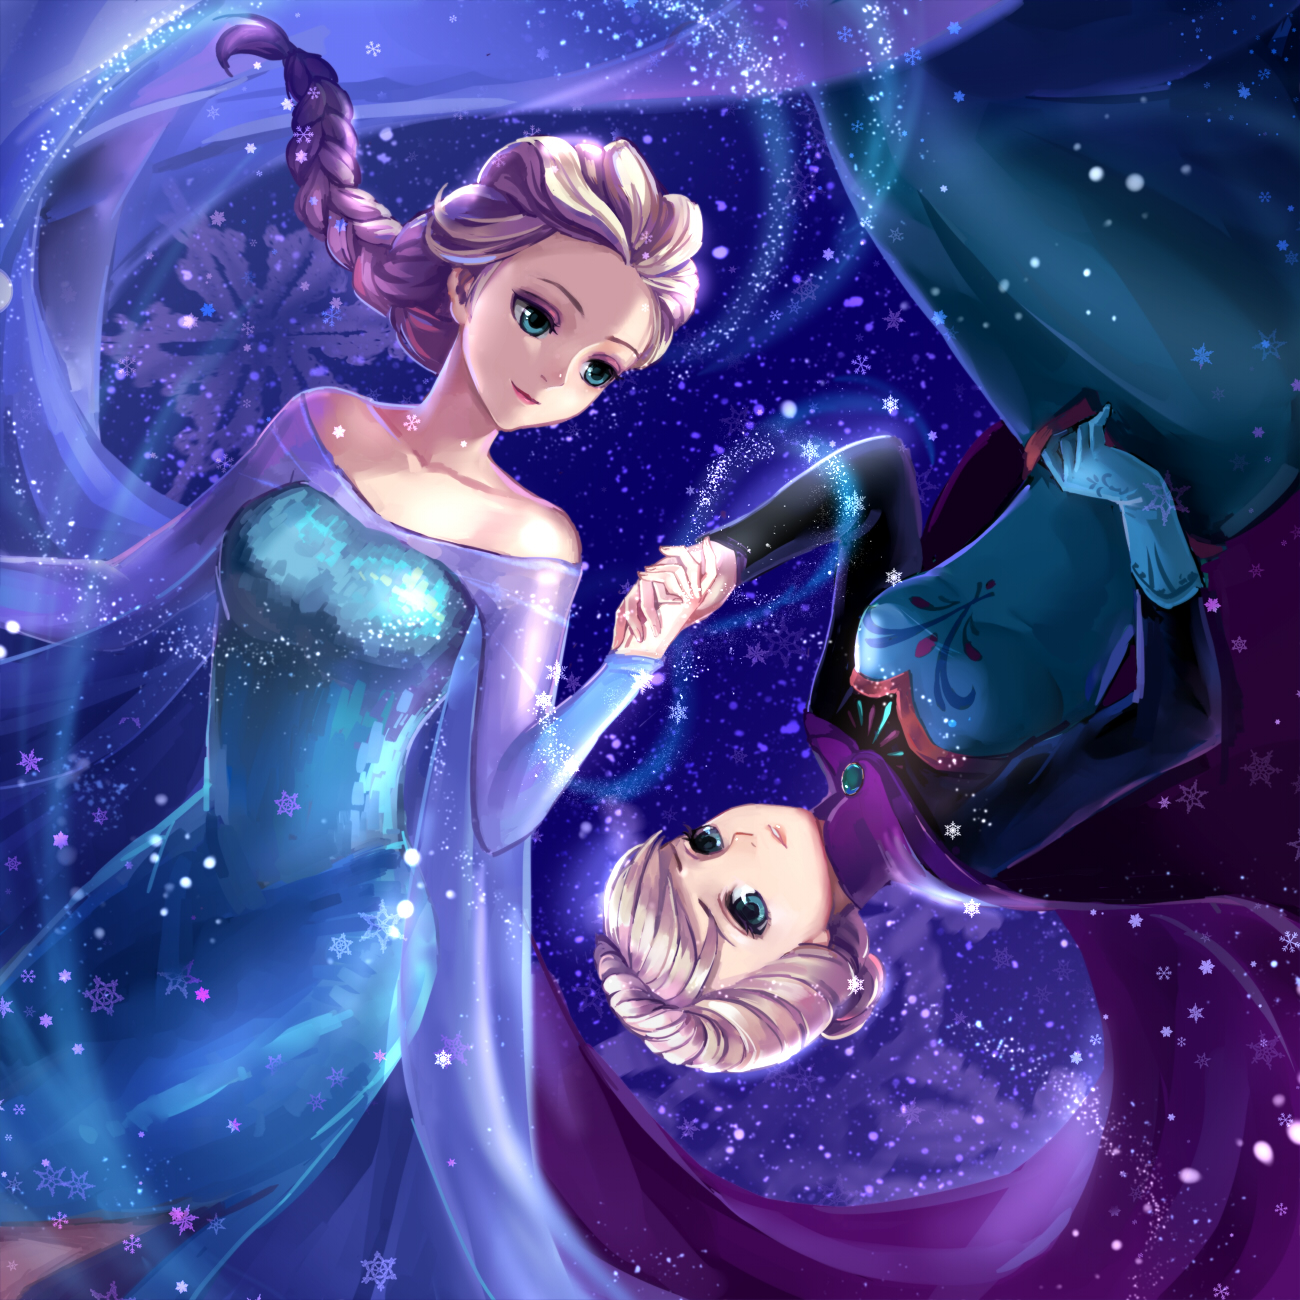 Elsa the Snow Queen - Frozen (Disney) - Image #1853349